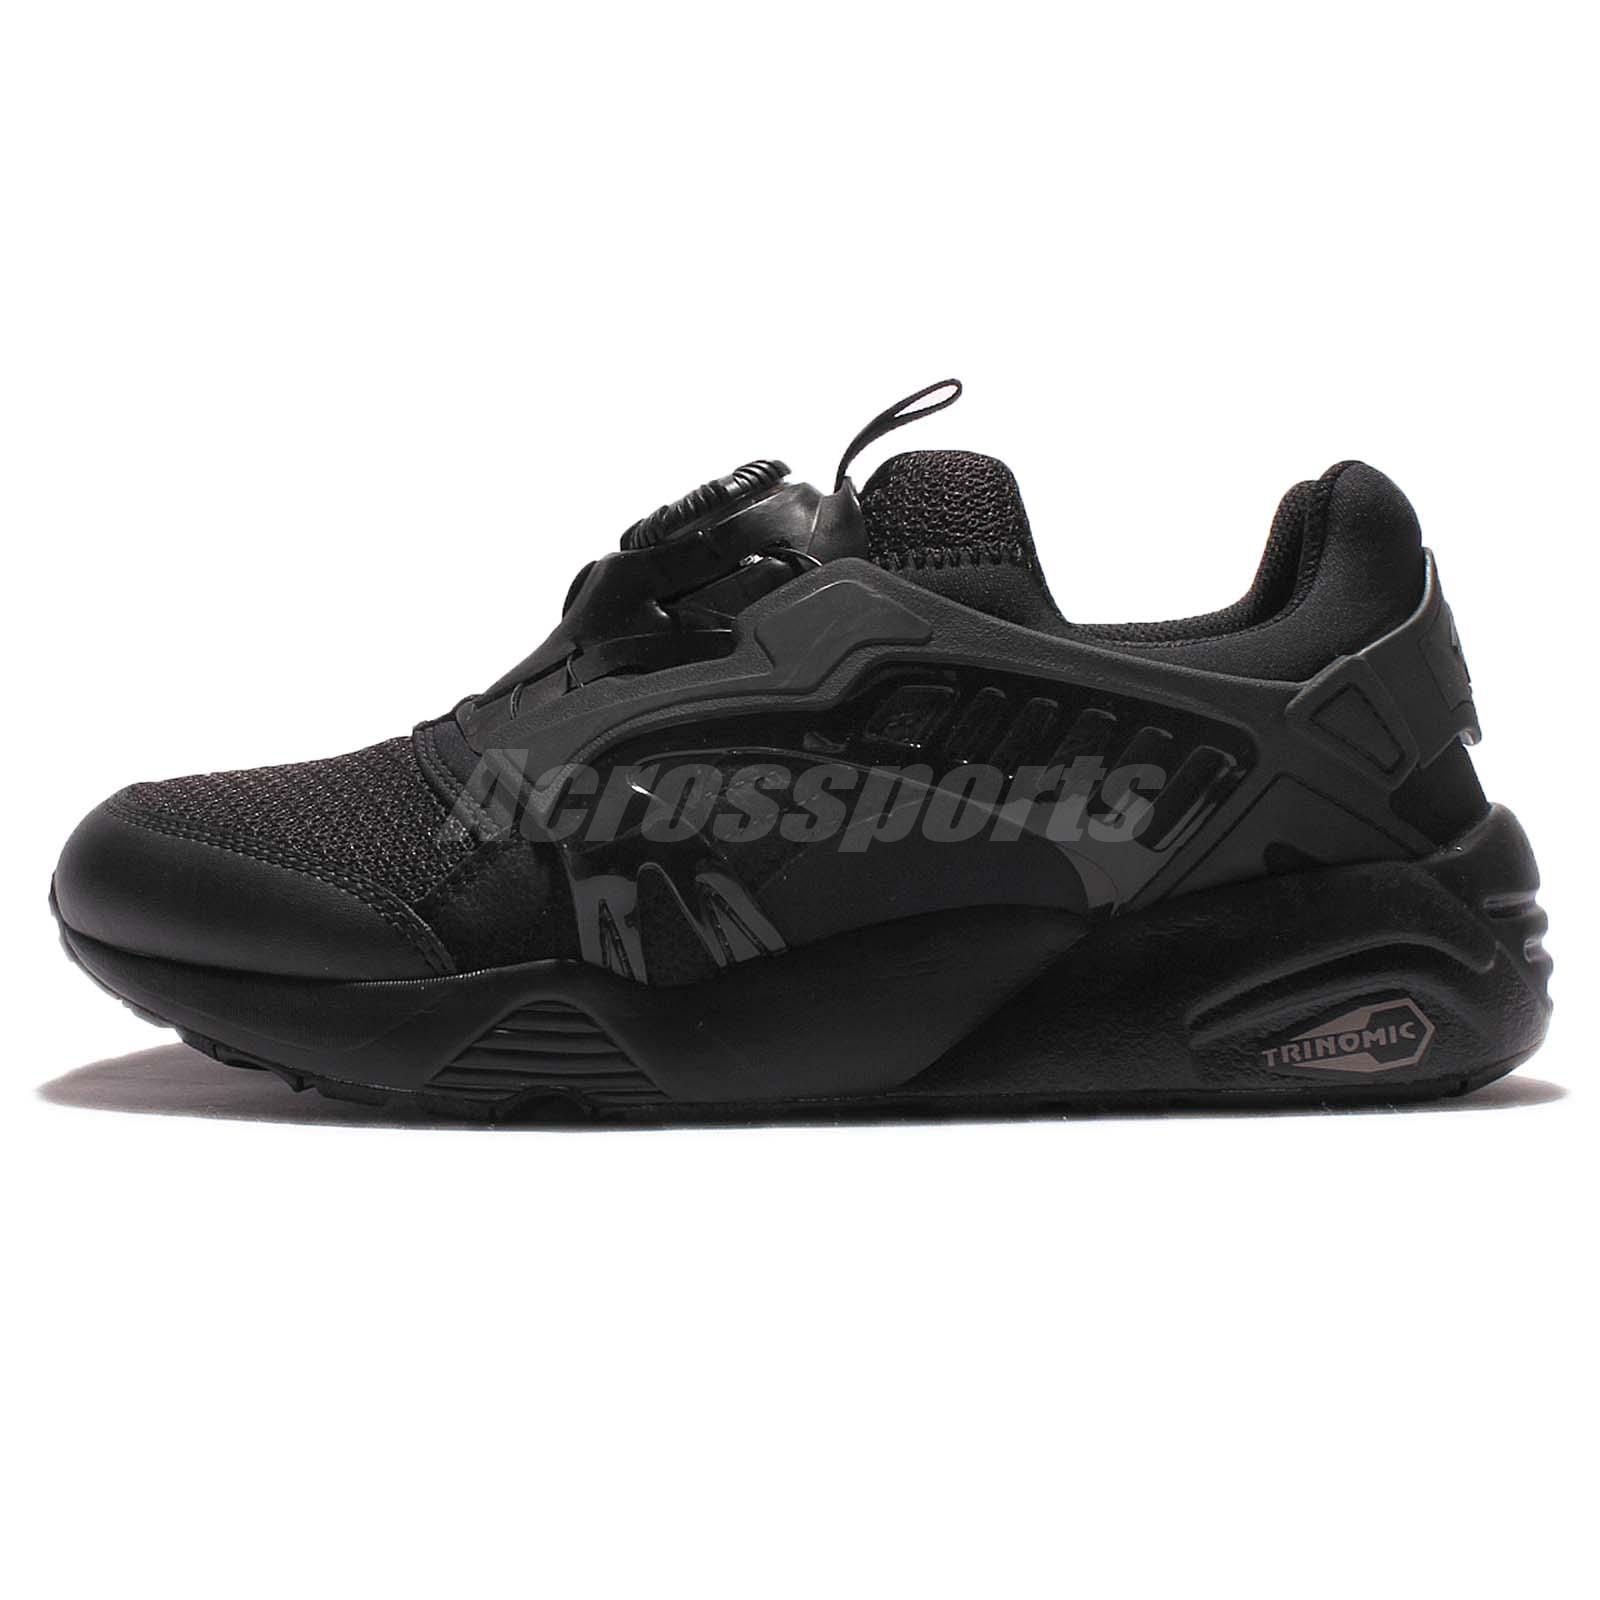 Details about Puma Disc Blaze CT Trinomic Triple Black Men Casual Shoes  Sneakers 362040-02 274fb9668